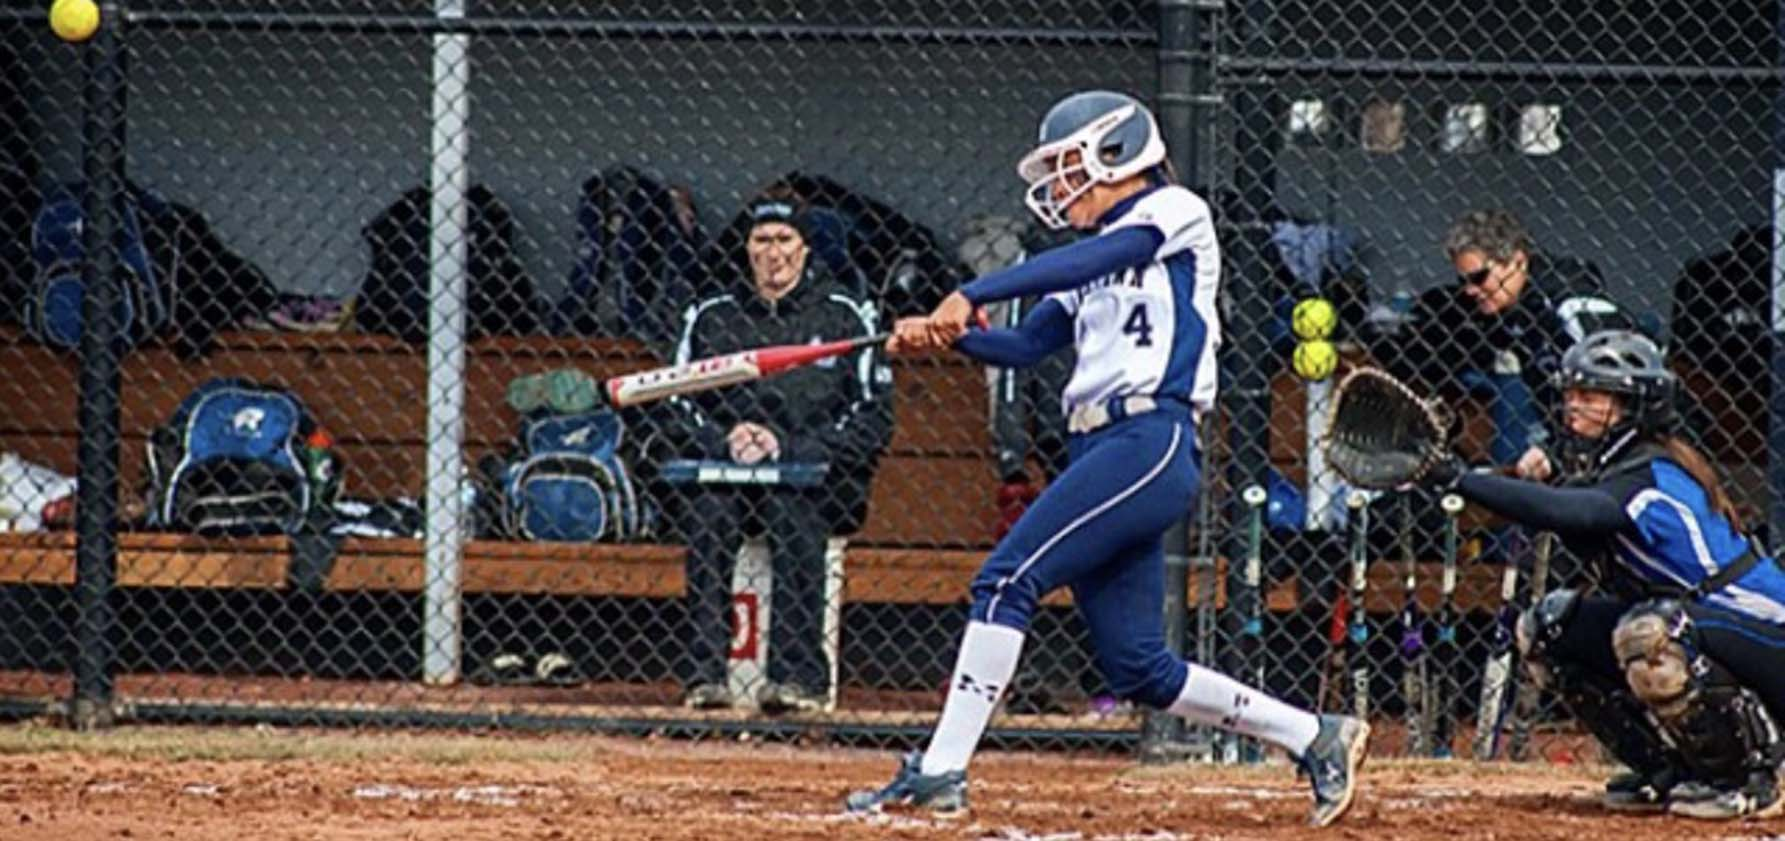 Dior Mariano '15 executes a hit in a softball game as a member of the Moravian Women's Softball Team.